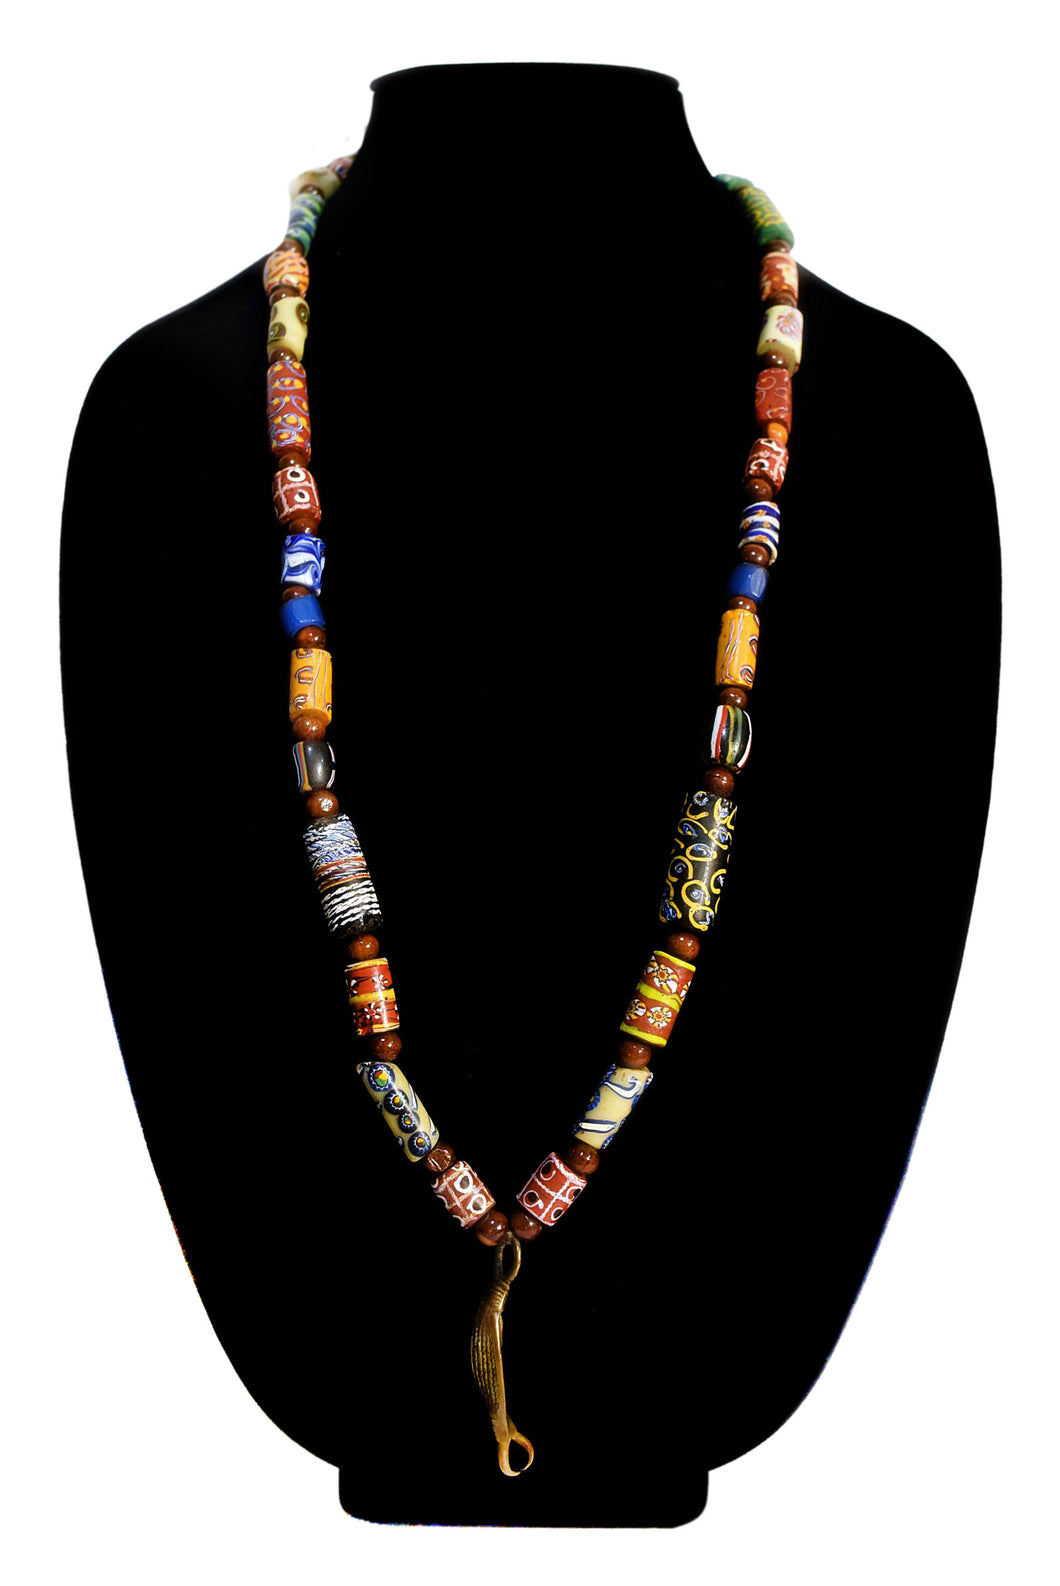 Brass Evil Eye Necklace With Chevron Millefiori and Other Antique Beads